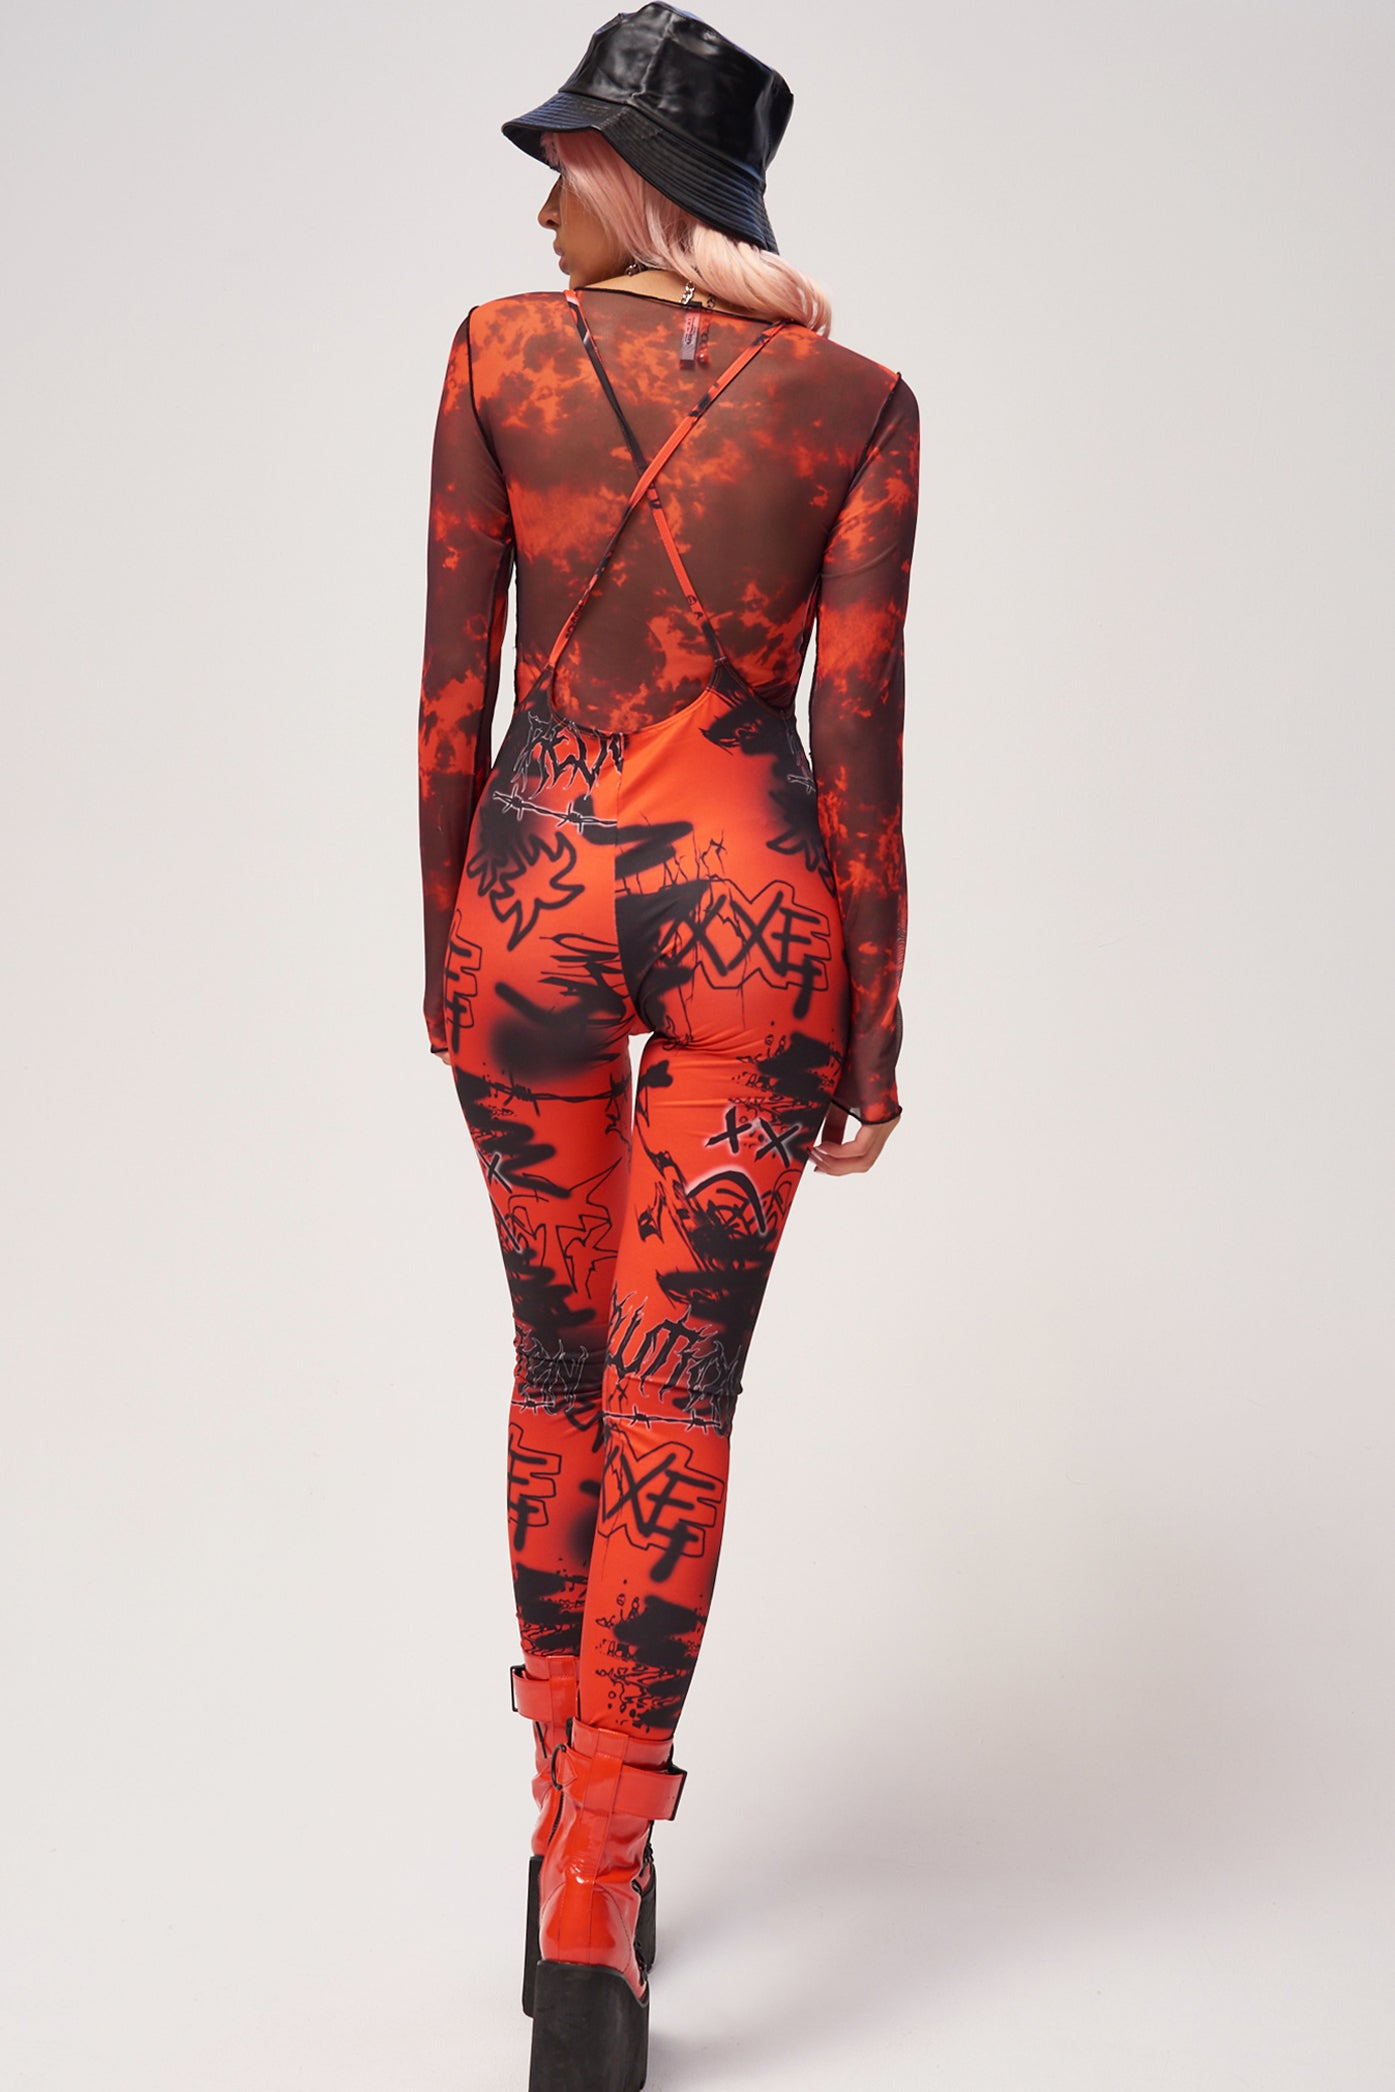 Red & Black Graffiti Print Square Neck Catsuit